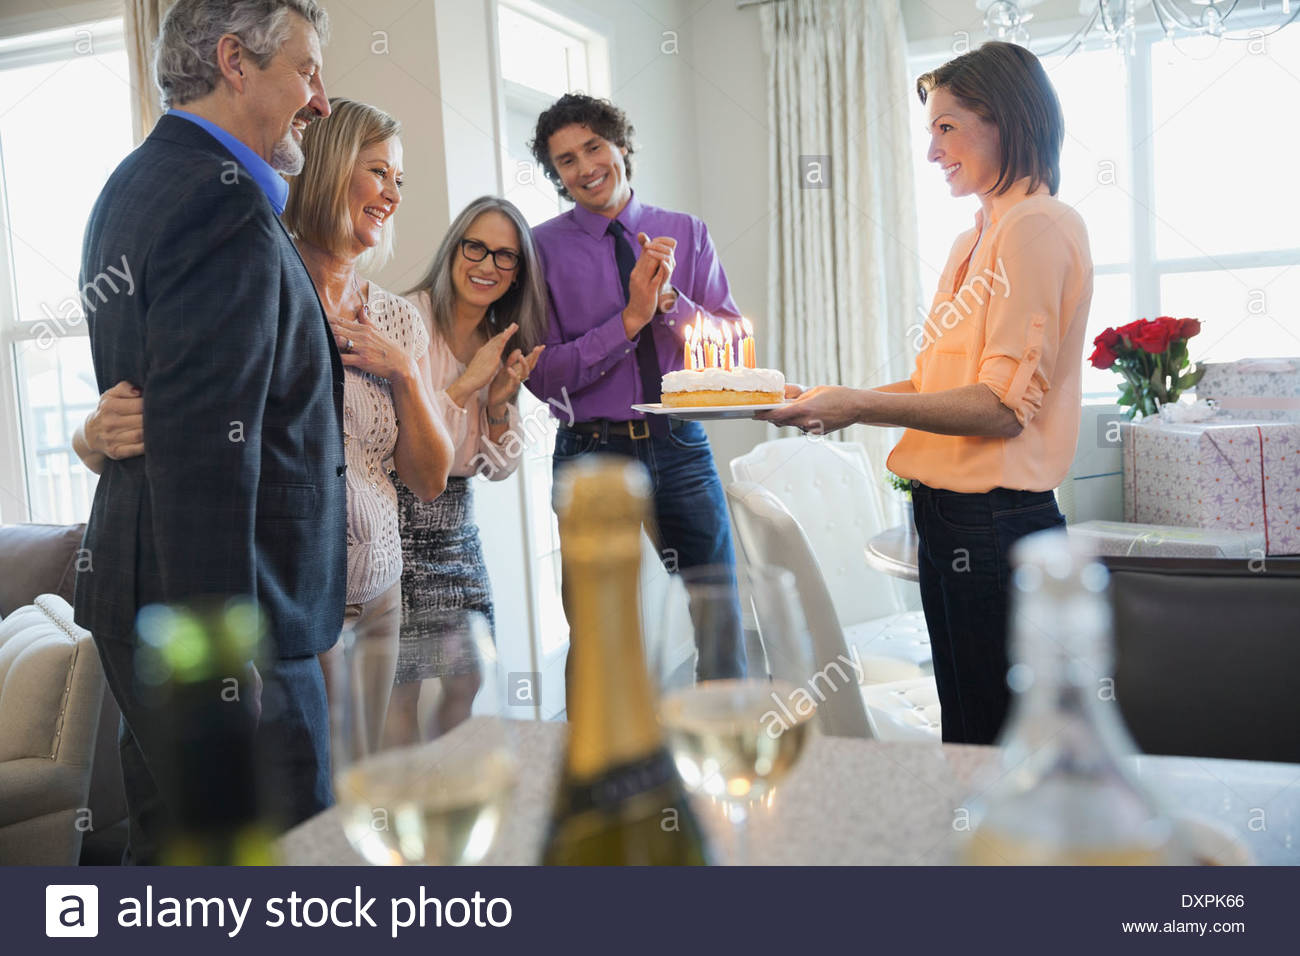 Family and friends celebrating birthday at home - Stock Image